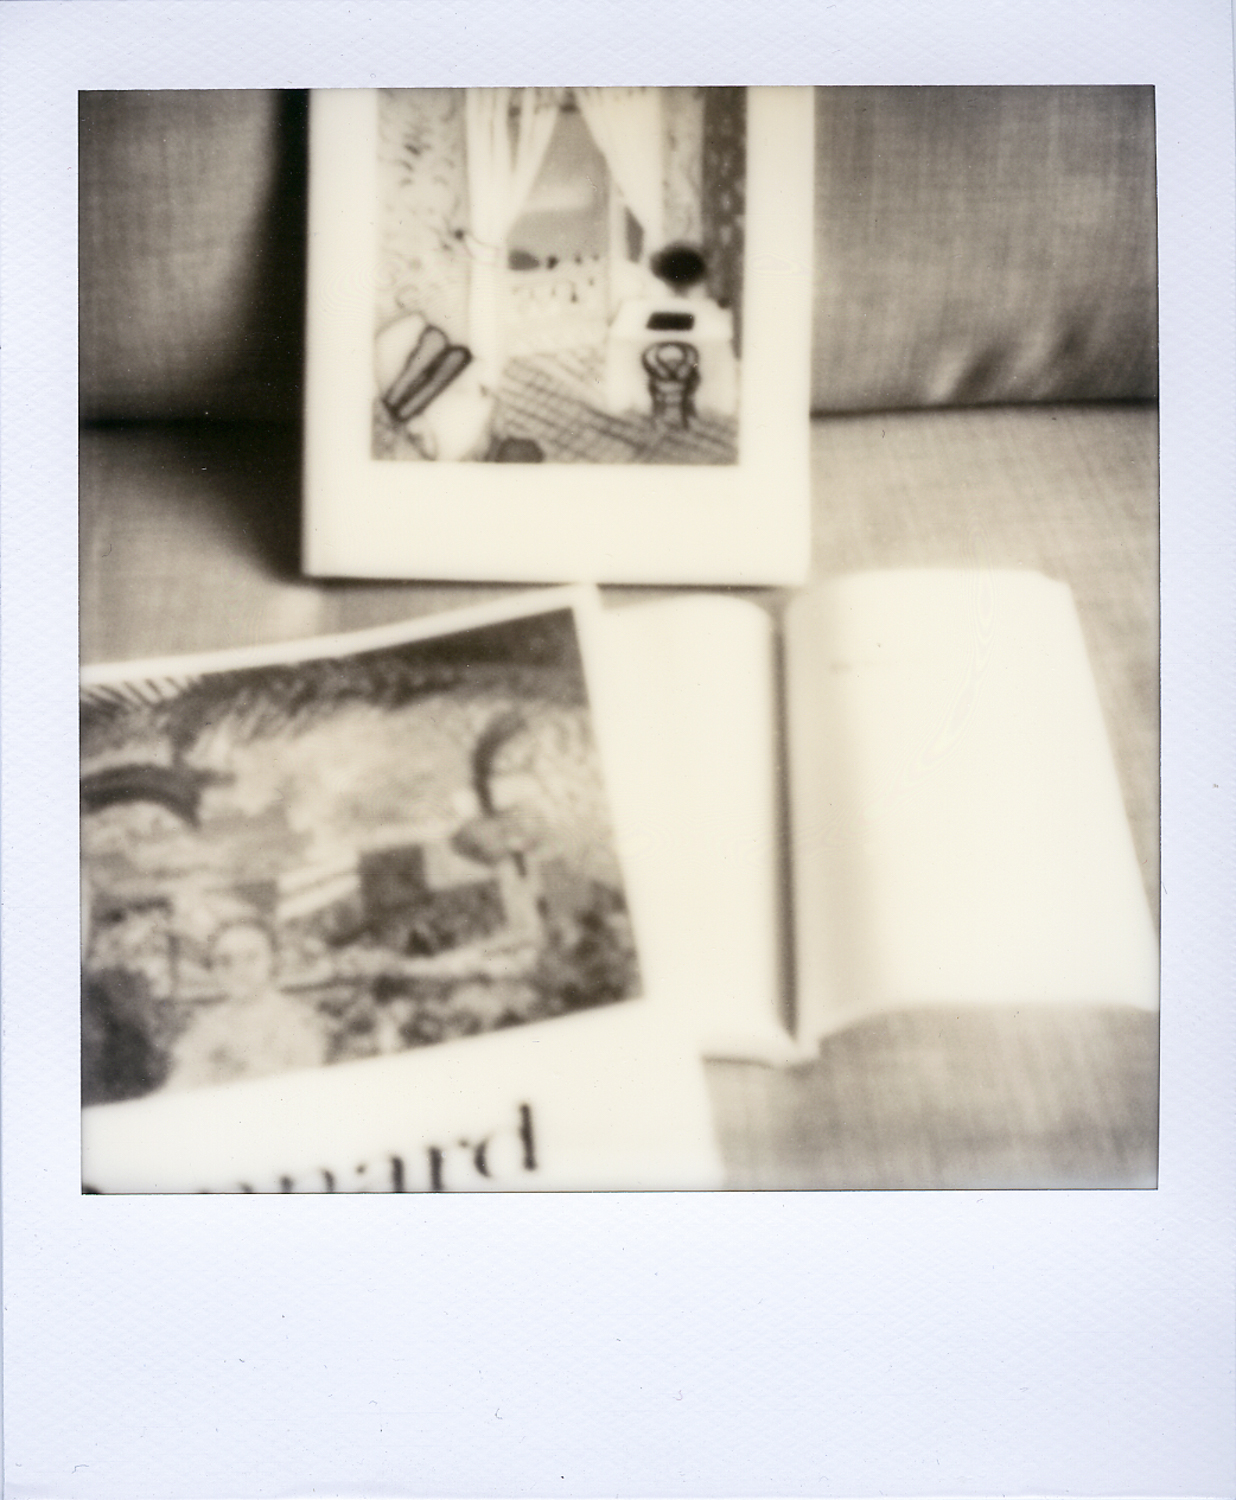 polaroid research001.jpg